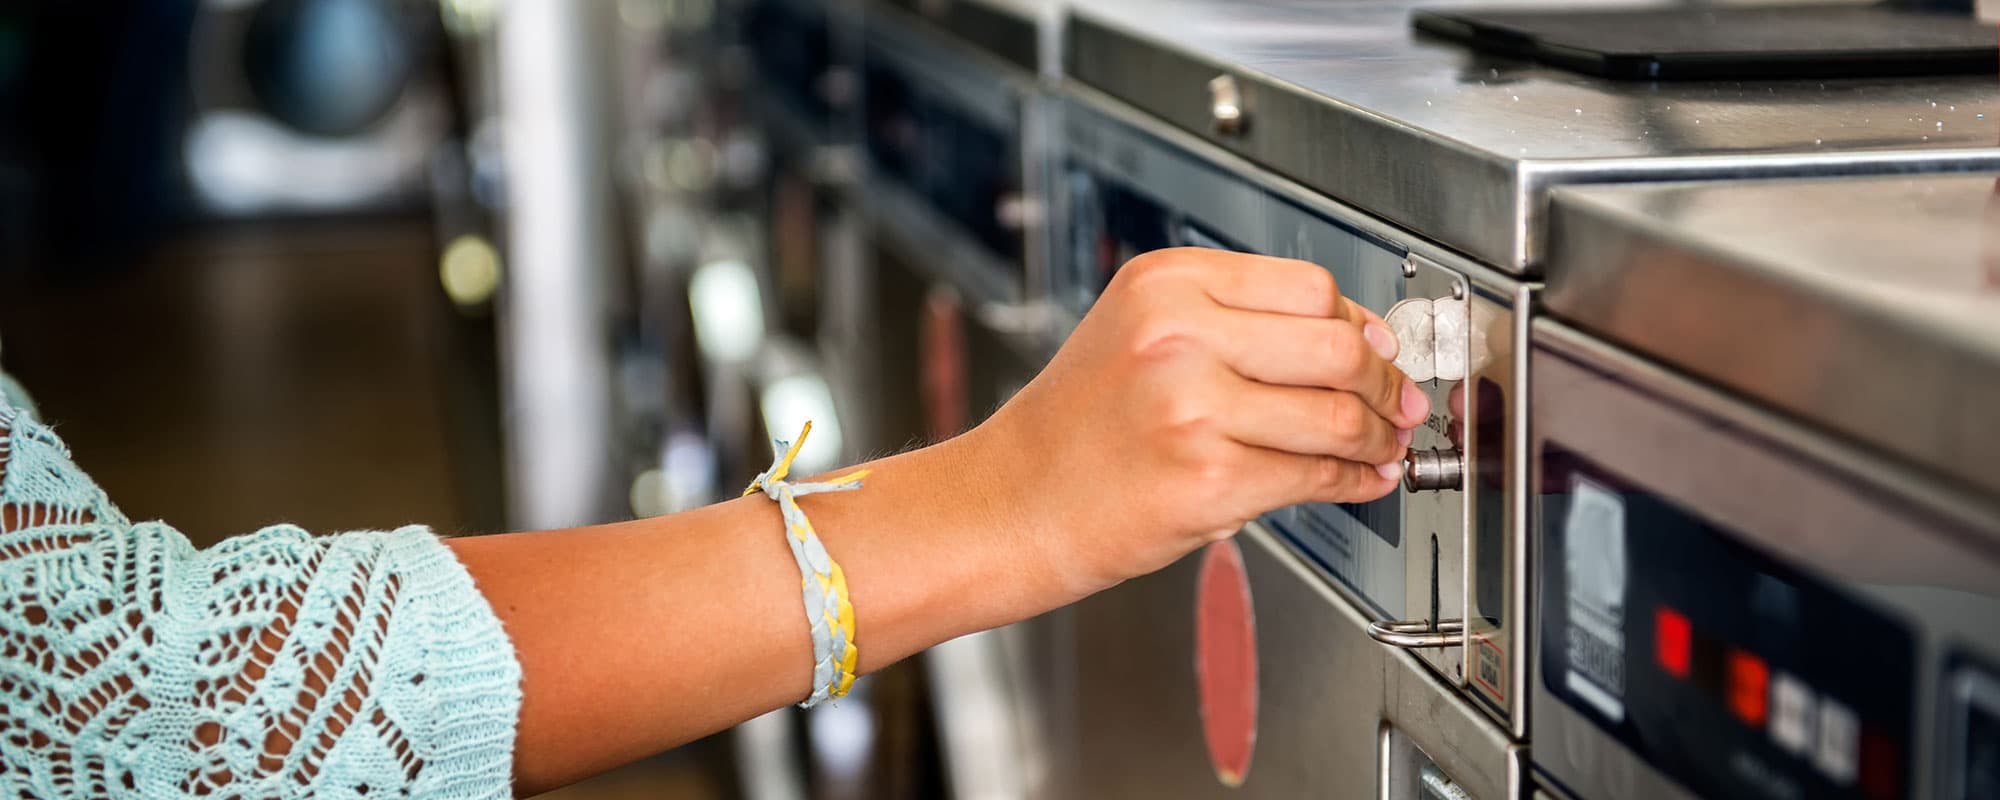 Photo of woman hand put quarter coin on the laundry machine in public laundry